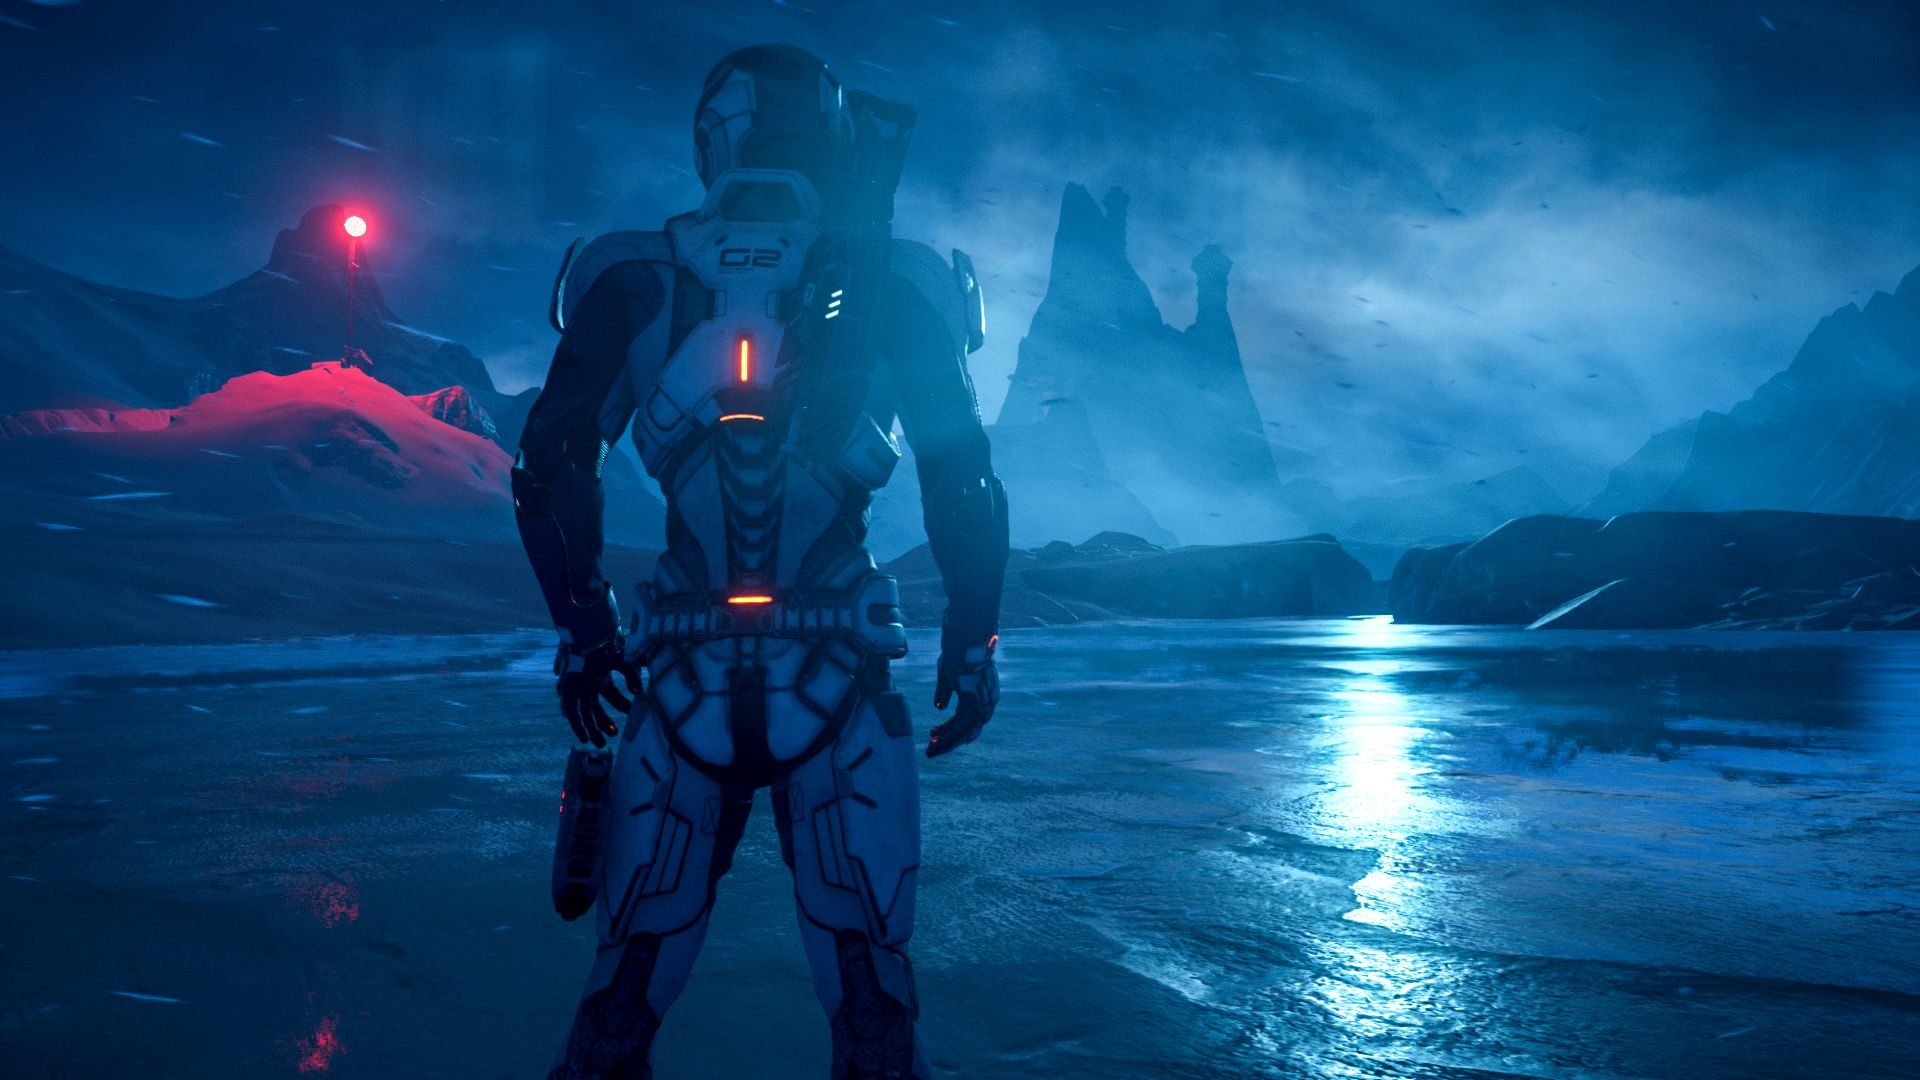 Mass Effect Andromeda Update 1.10 Focuses on Multiplayer Changes and Fixes